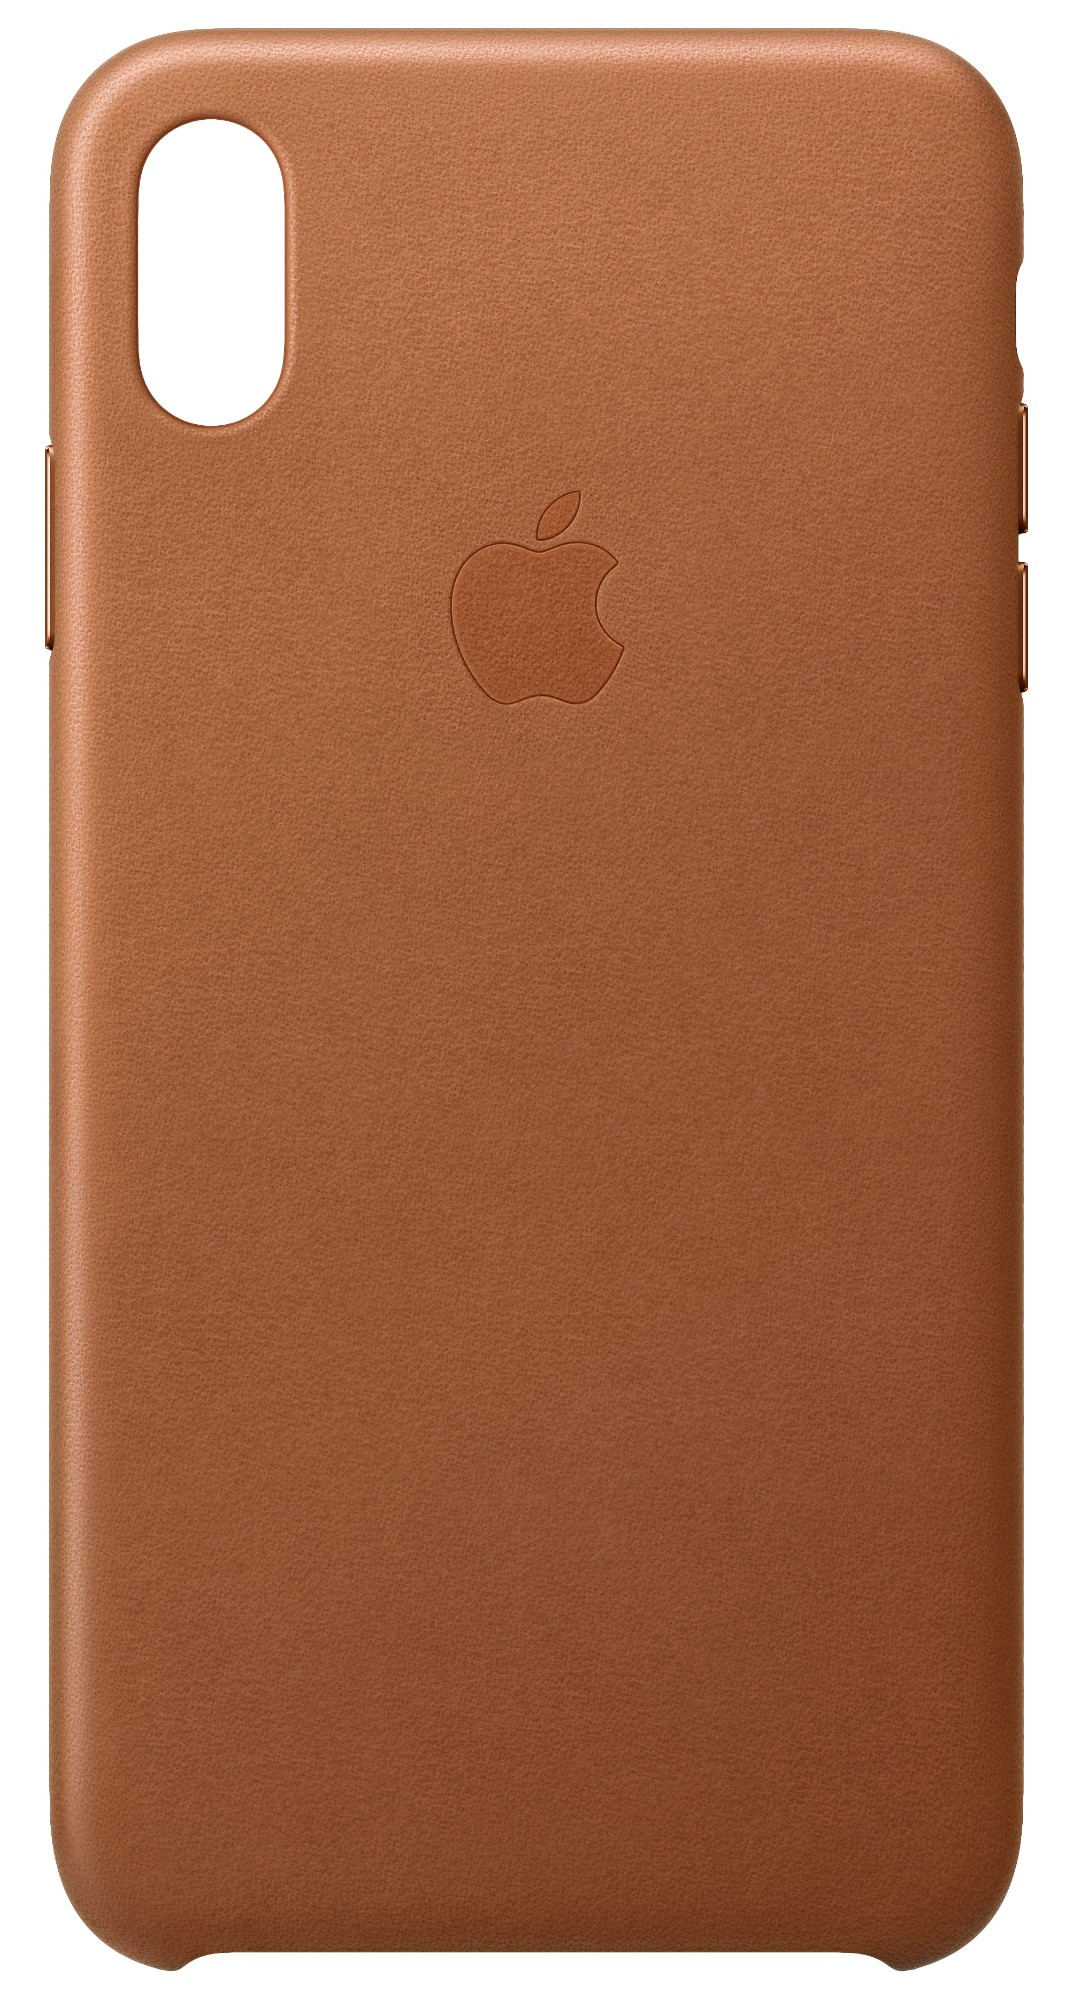 iPhone Xs Max - Leather Case - Saddle Brown